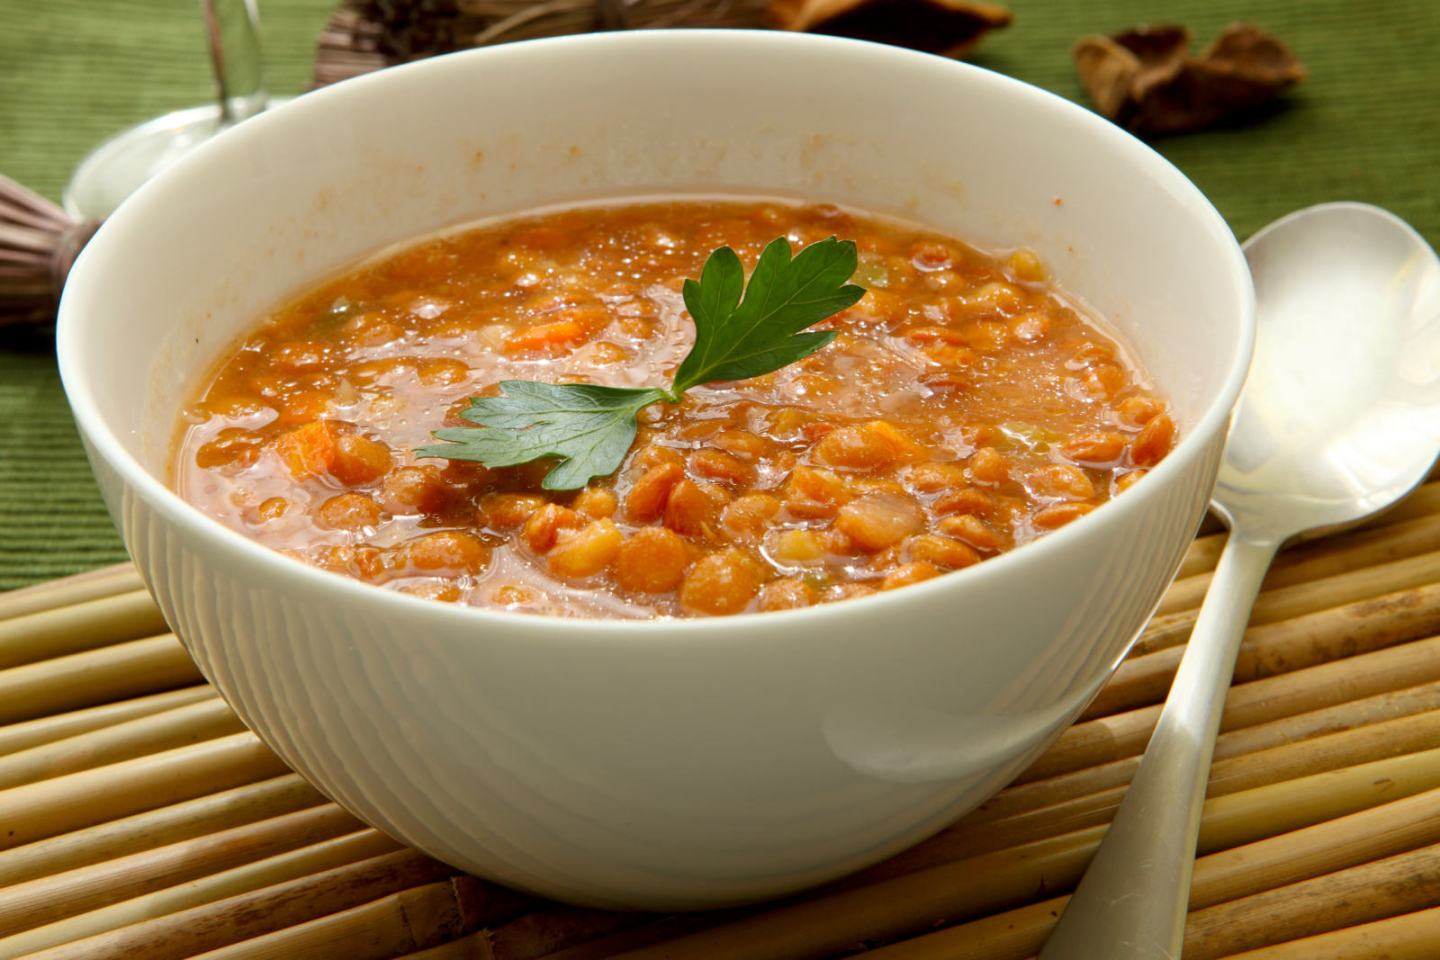 a white bowl of lentil soup with parsley